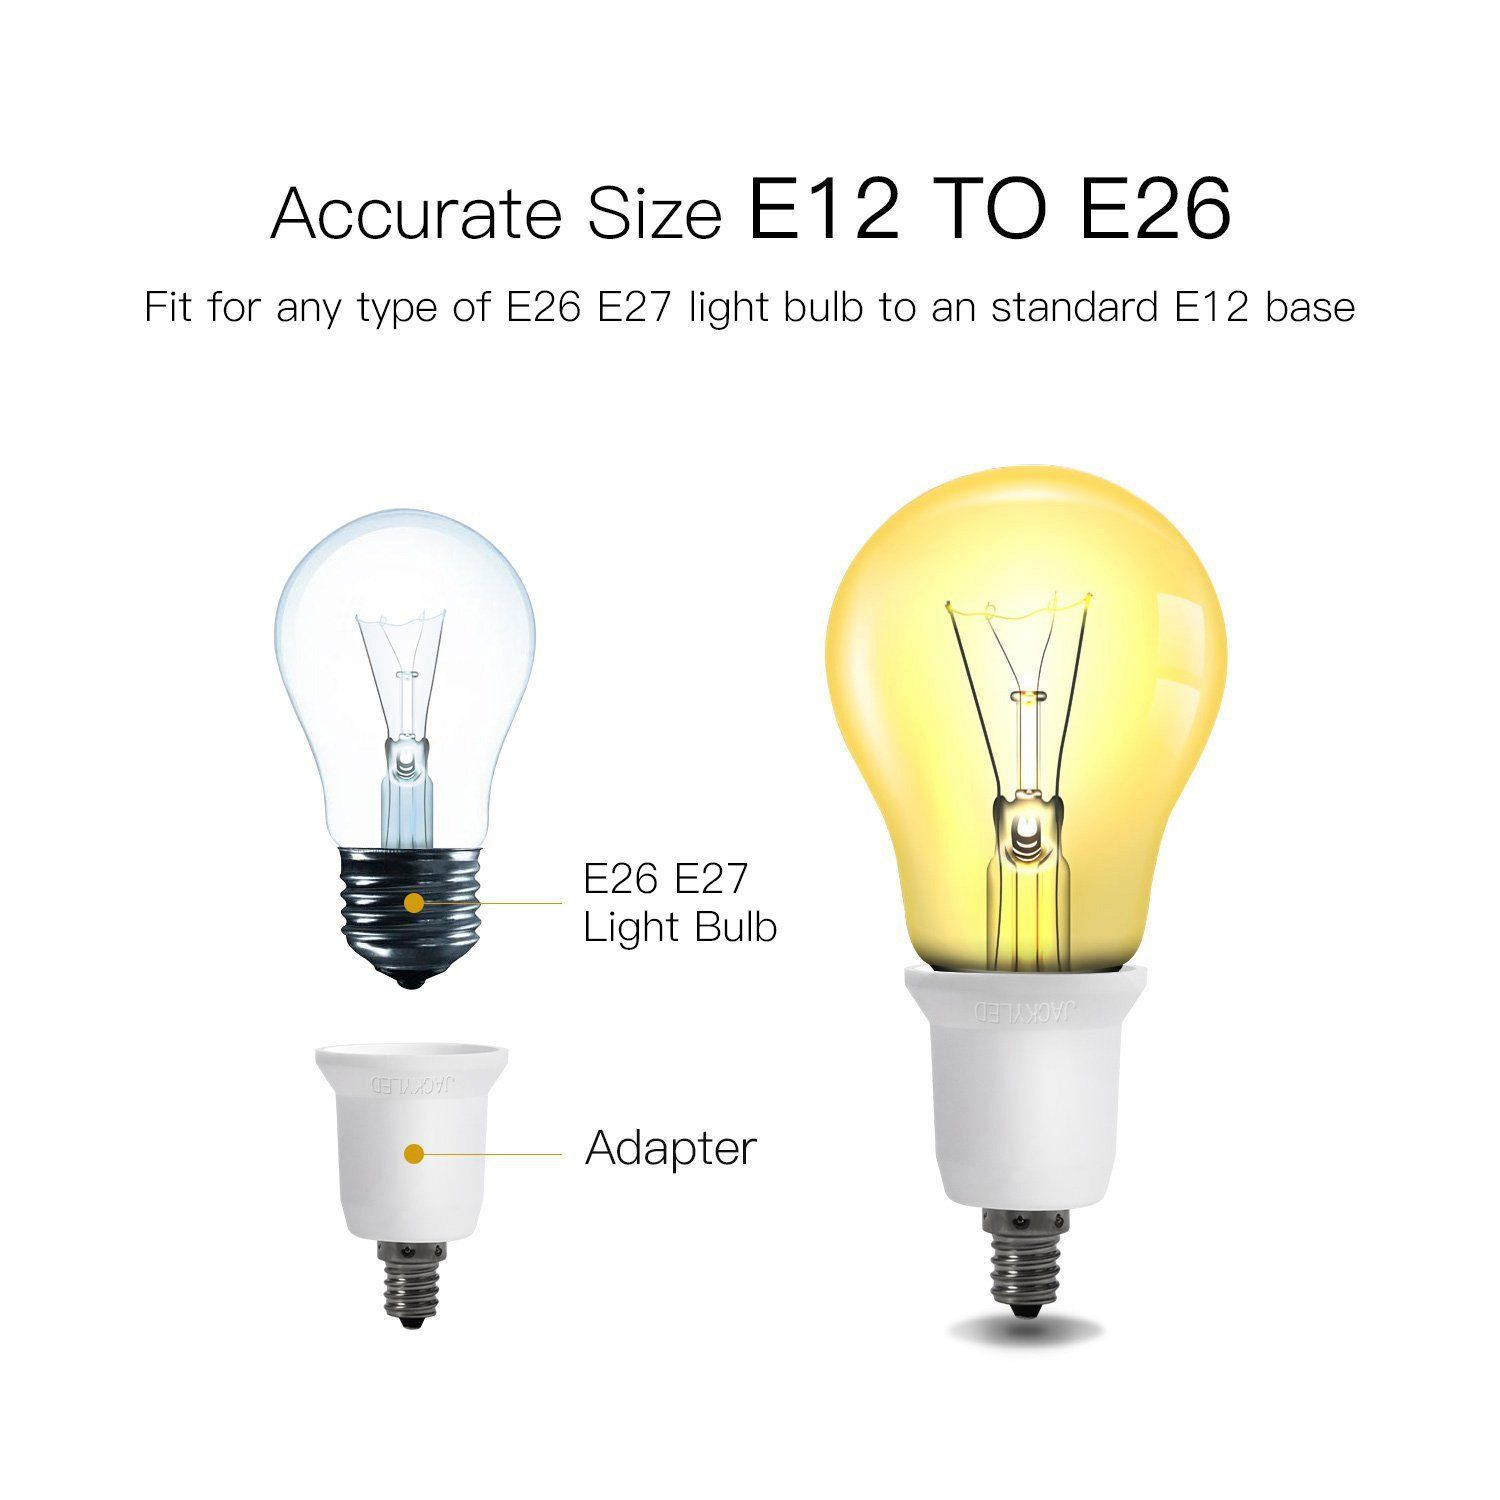 Jackyled E12 To E26 E27 Adapter 5pack Chandelier Light Socket E12 To Medium Socket E26 E27 Converter Bulb Base Ada Light Bulb Adapter E27 Light Bulb Light Bulb